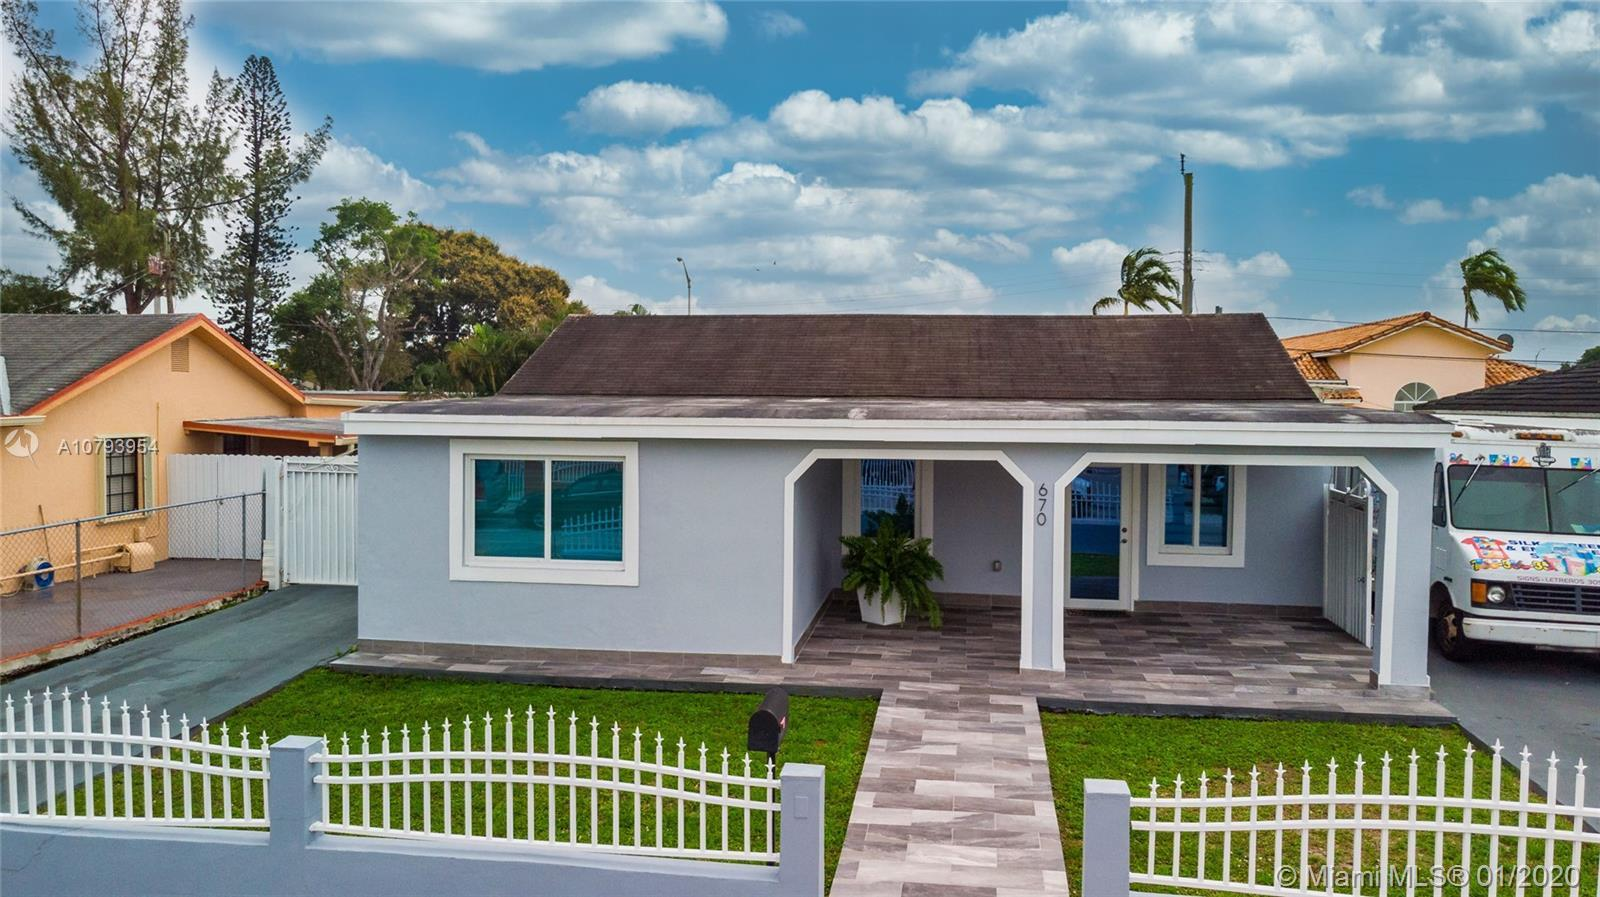 You'll love this charming, Hialeah home with a great sized backyard. This 4 bedroom, 2.5 bathroom ho